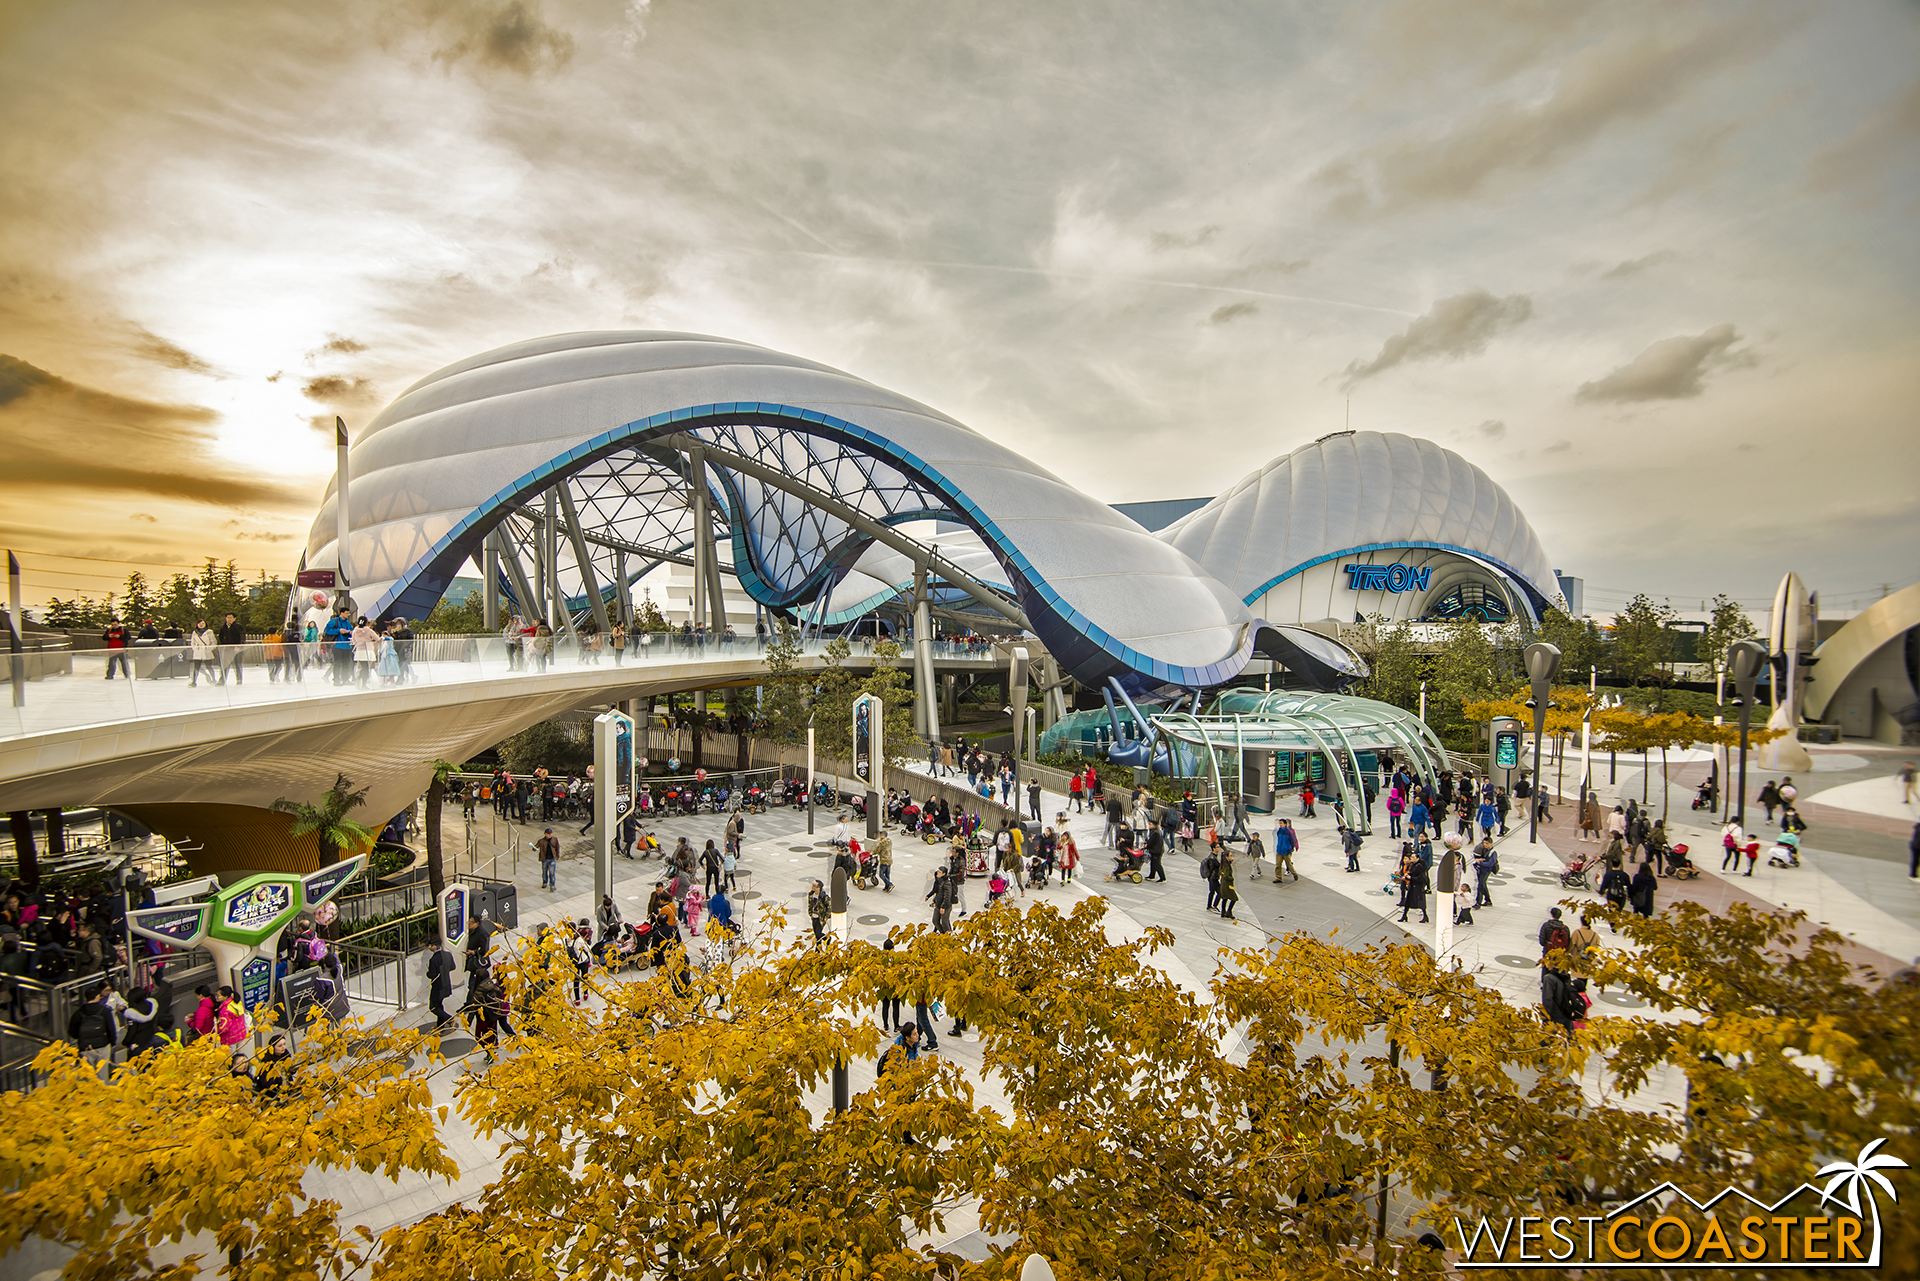 Fall foliage and a nice sunset over TRON: Lightcycle Power Run.